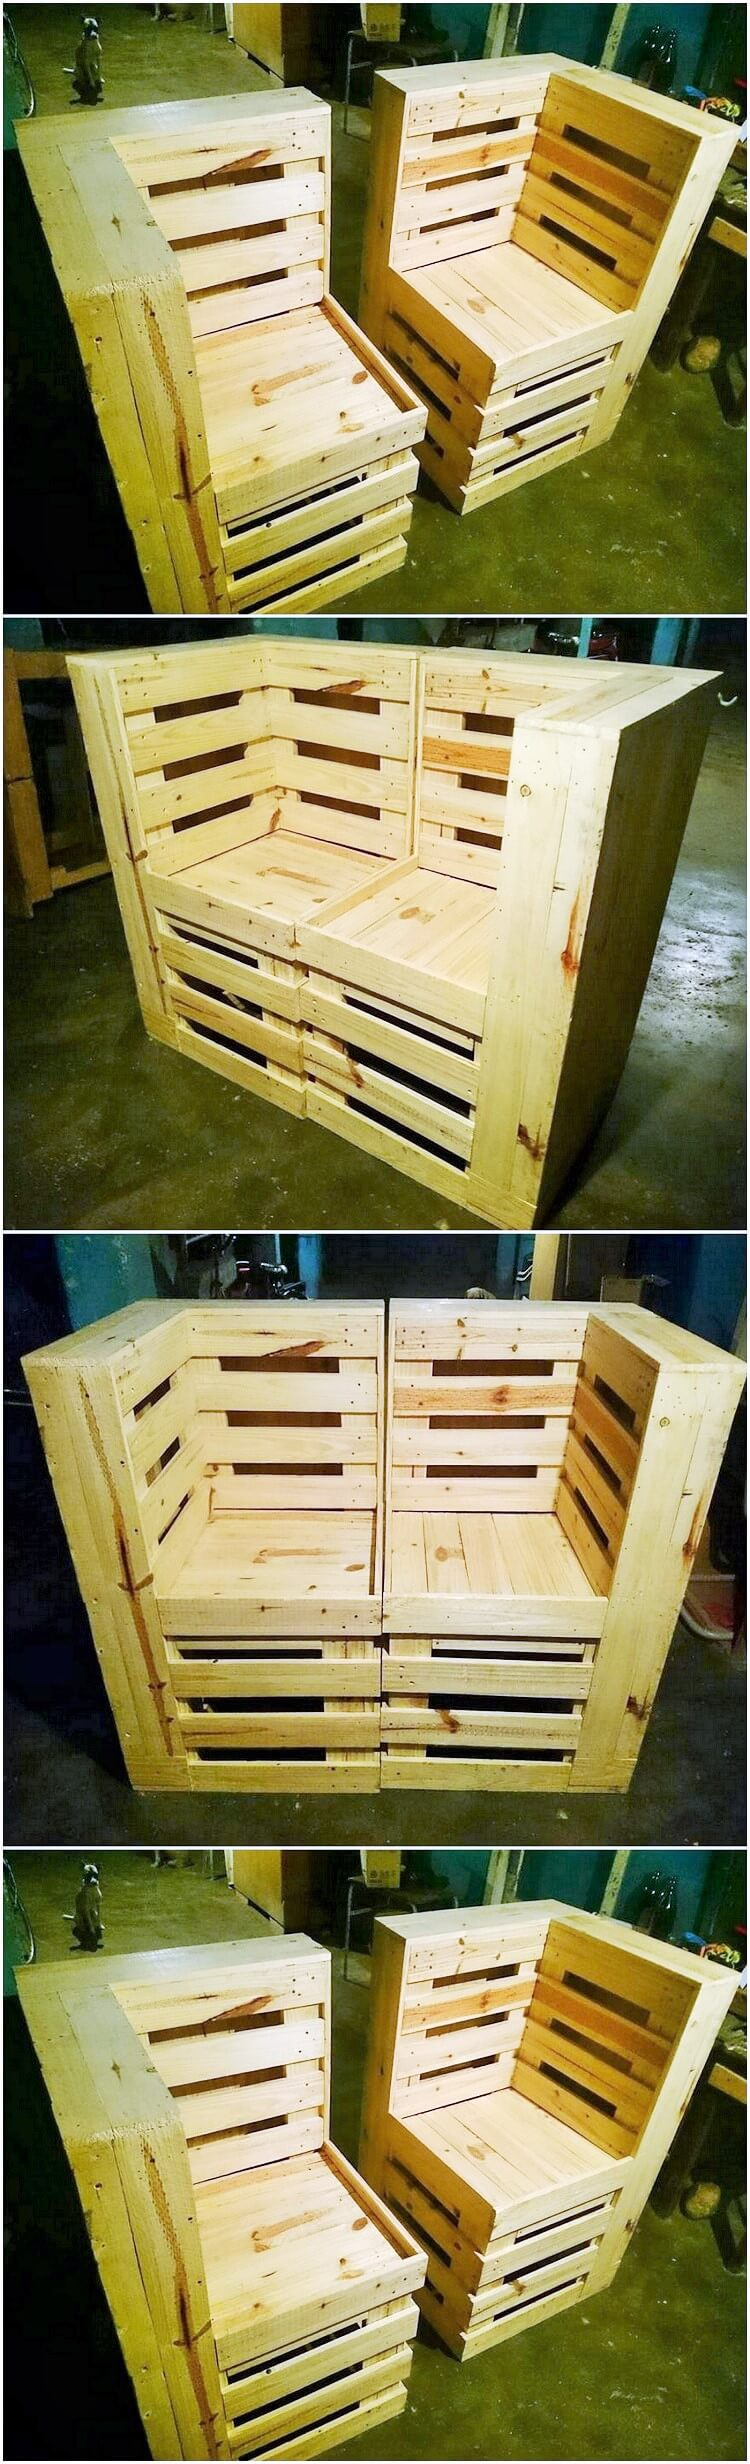 Old-Pallet- Diy-Recycle-Things-Projects-23